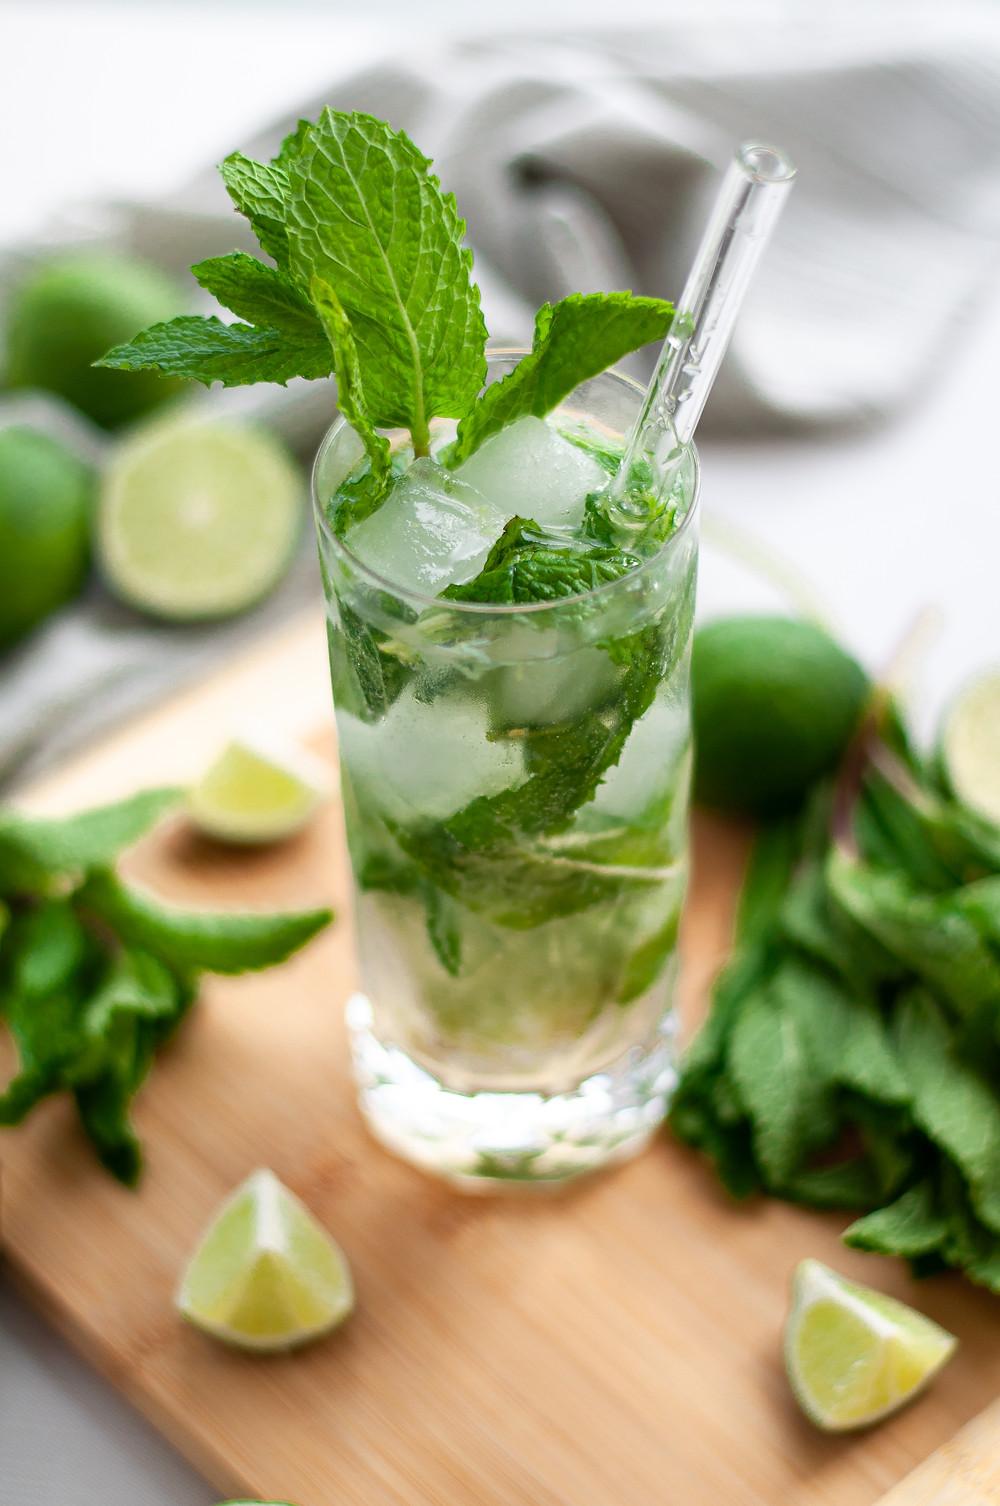 Highball glass filled with this mojito mocktail recipe. The glass has a sprig of mint for garnish and a straw, and is sitting on a cutting board covered in additional mint and lime wedges.